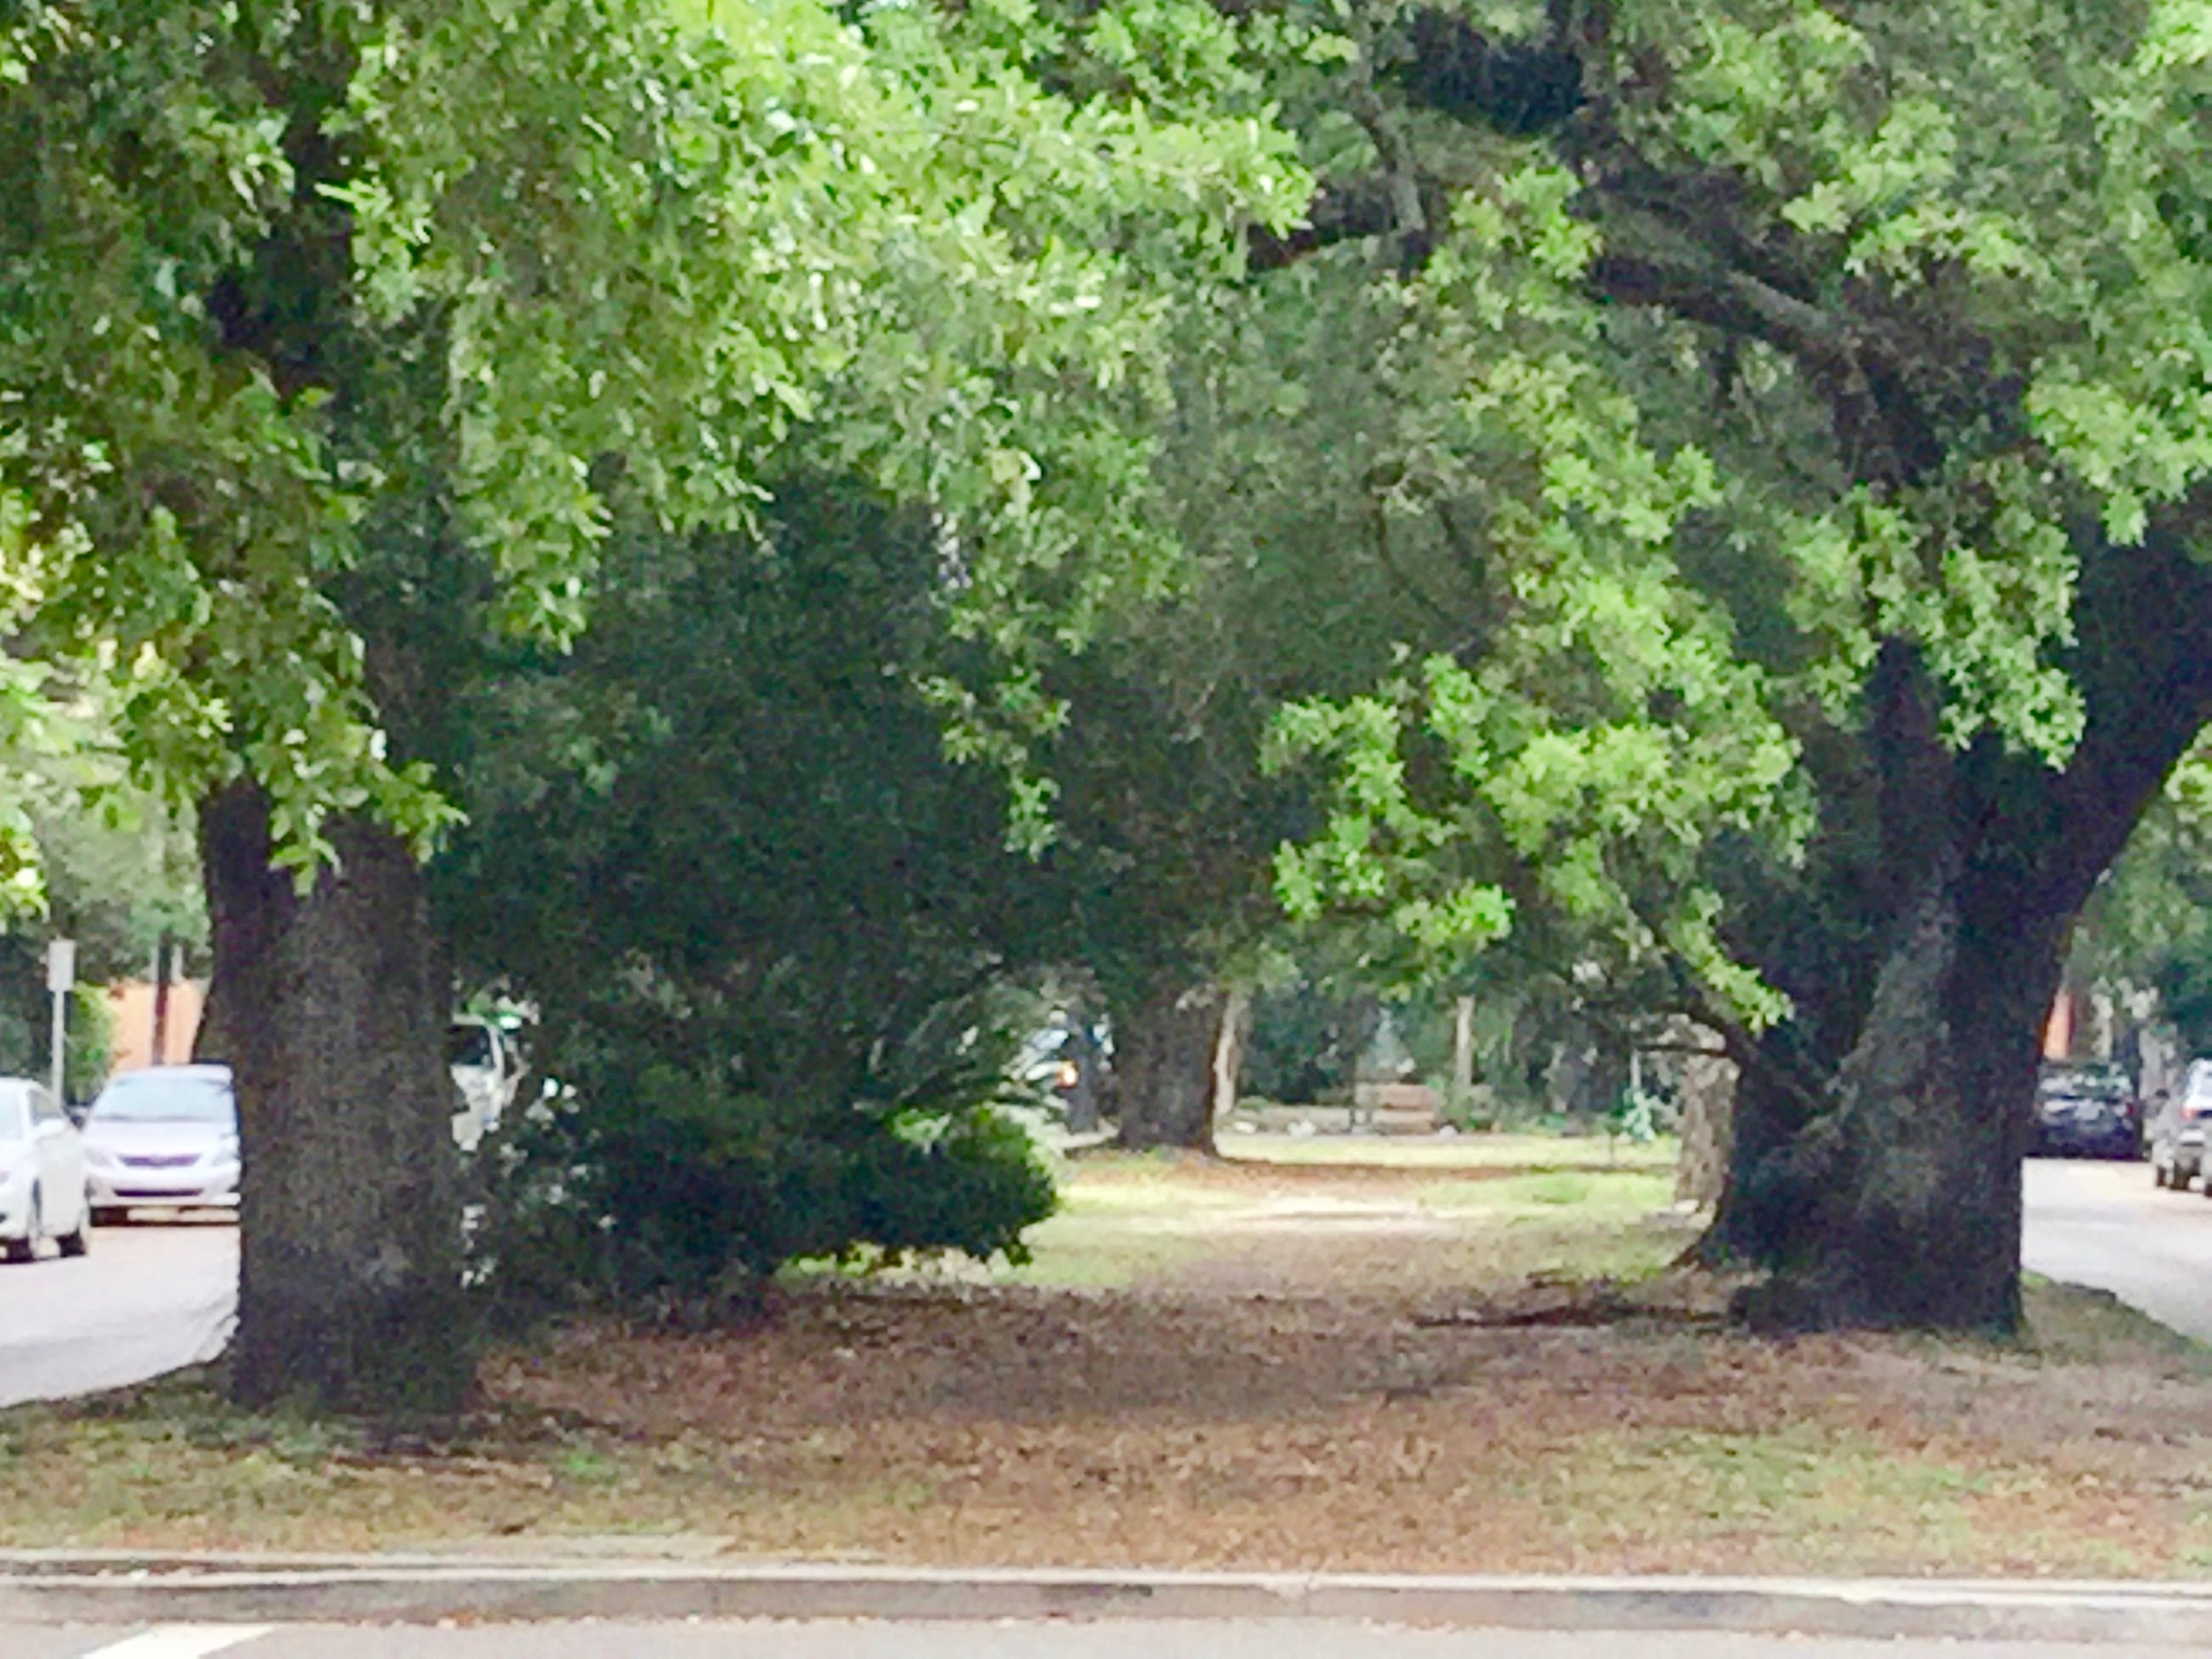 Part of the neutral ground on Esplanade Avenue in New Orleans, LA.